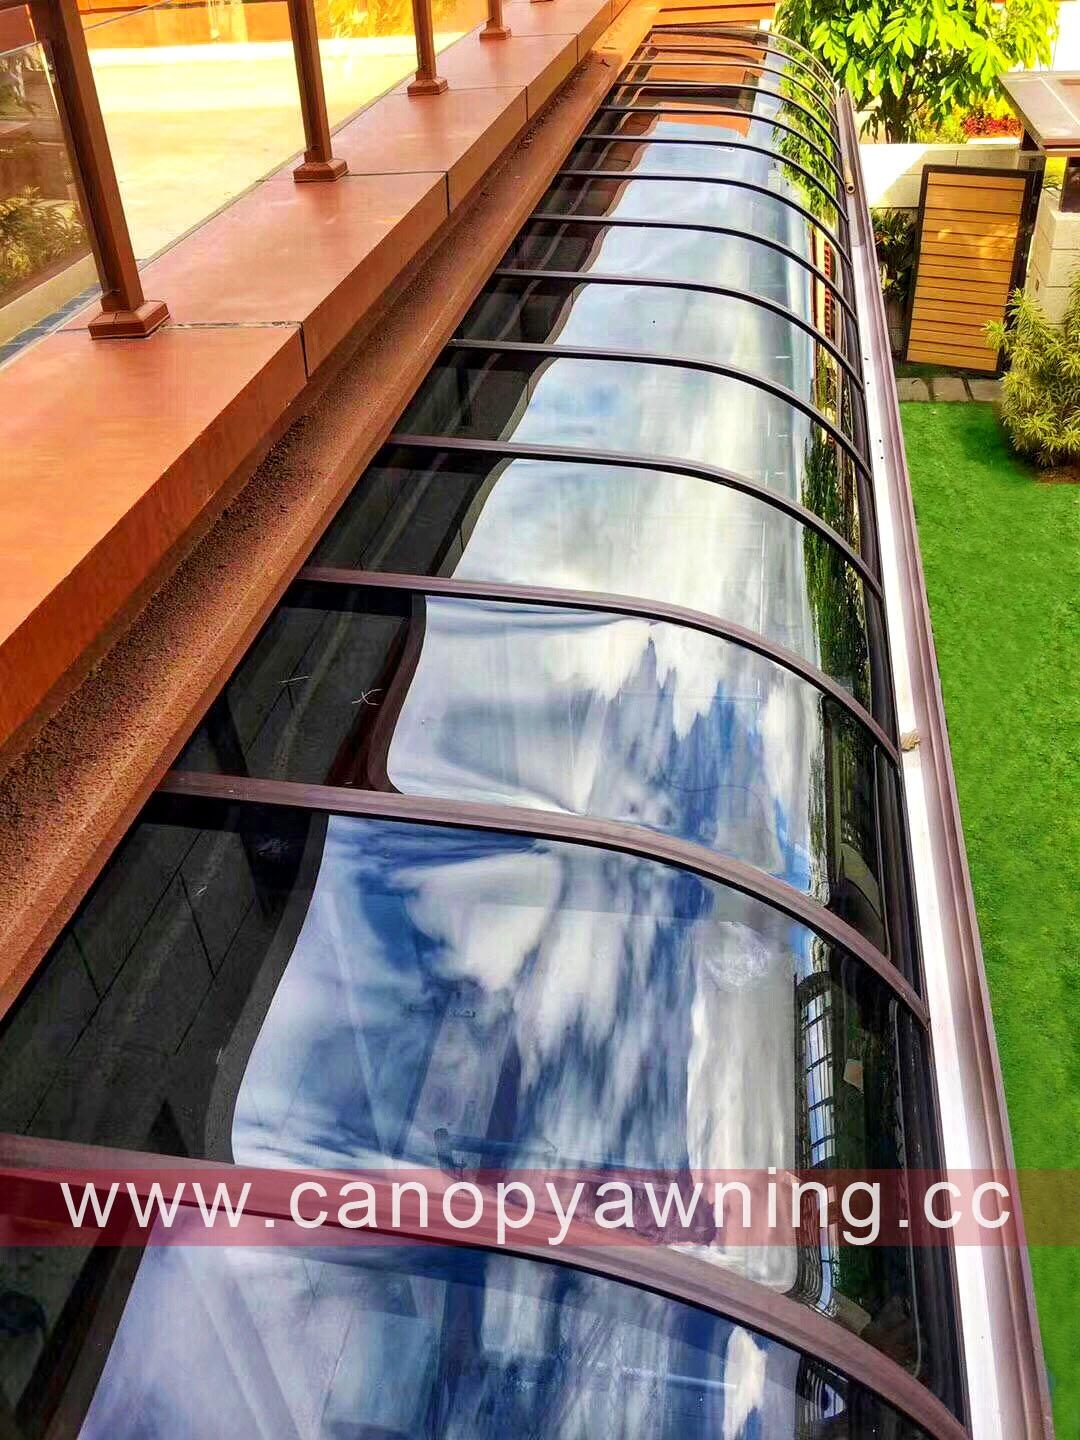 pc canopy,aluminum patio cover,polycarbonate patio covers